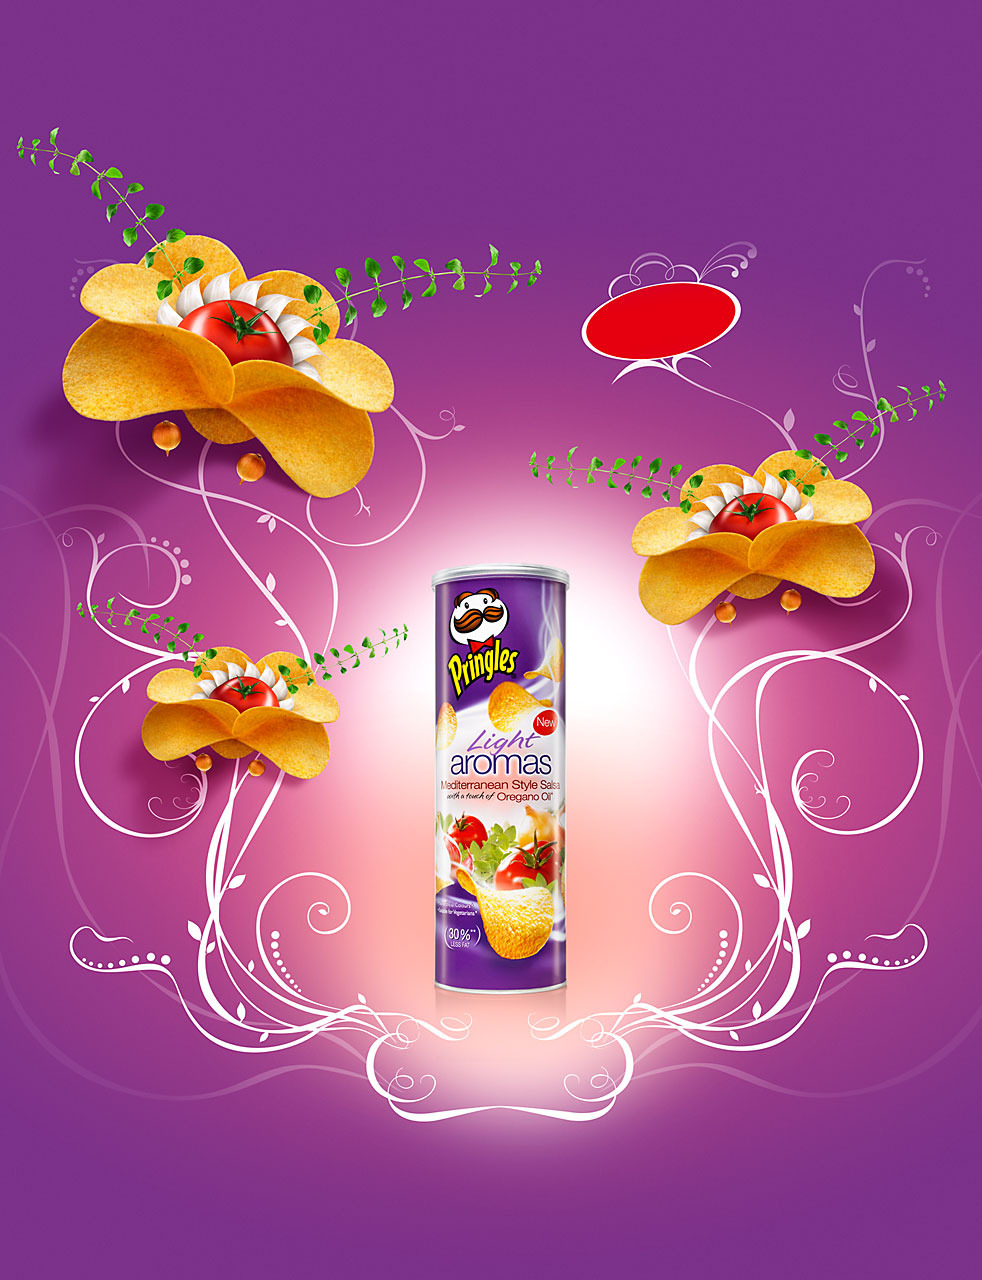 Sabine-Scheer-pringles-light-aromas-food